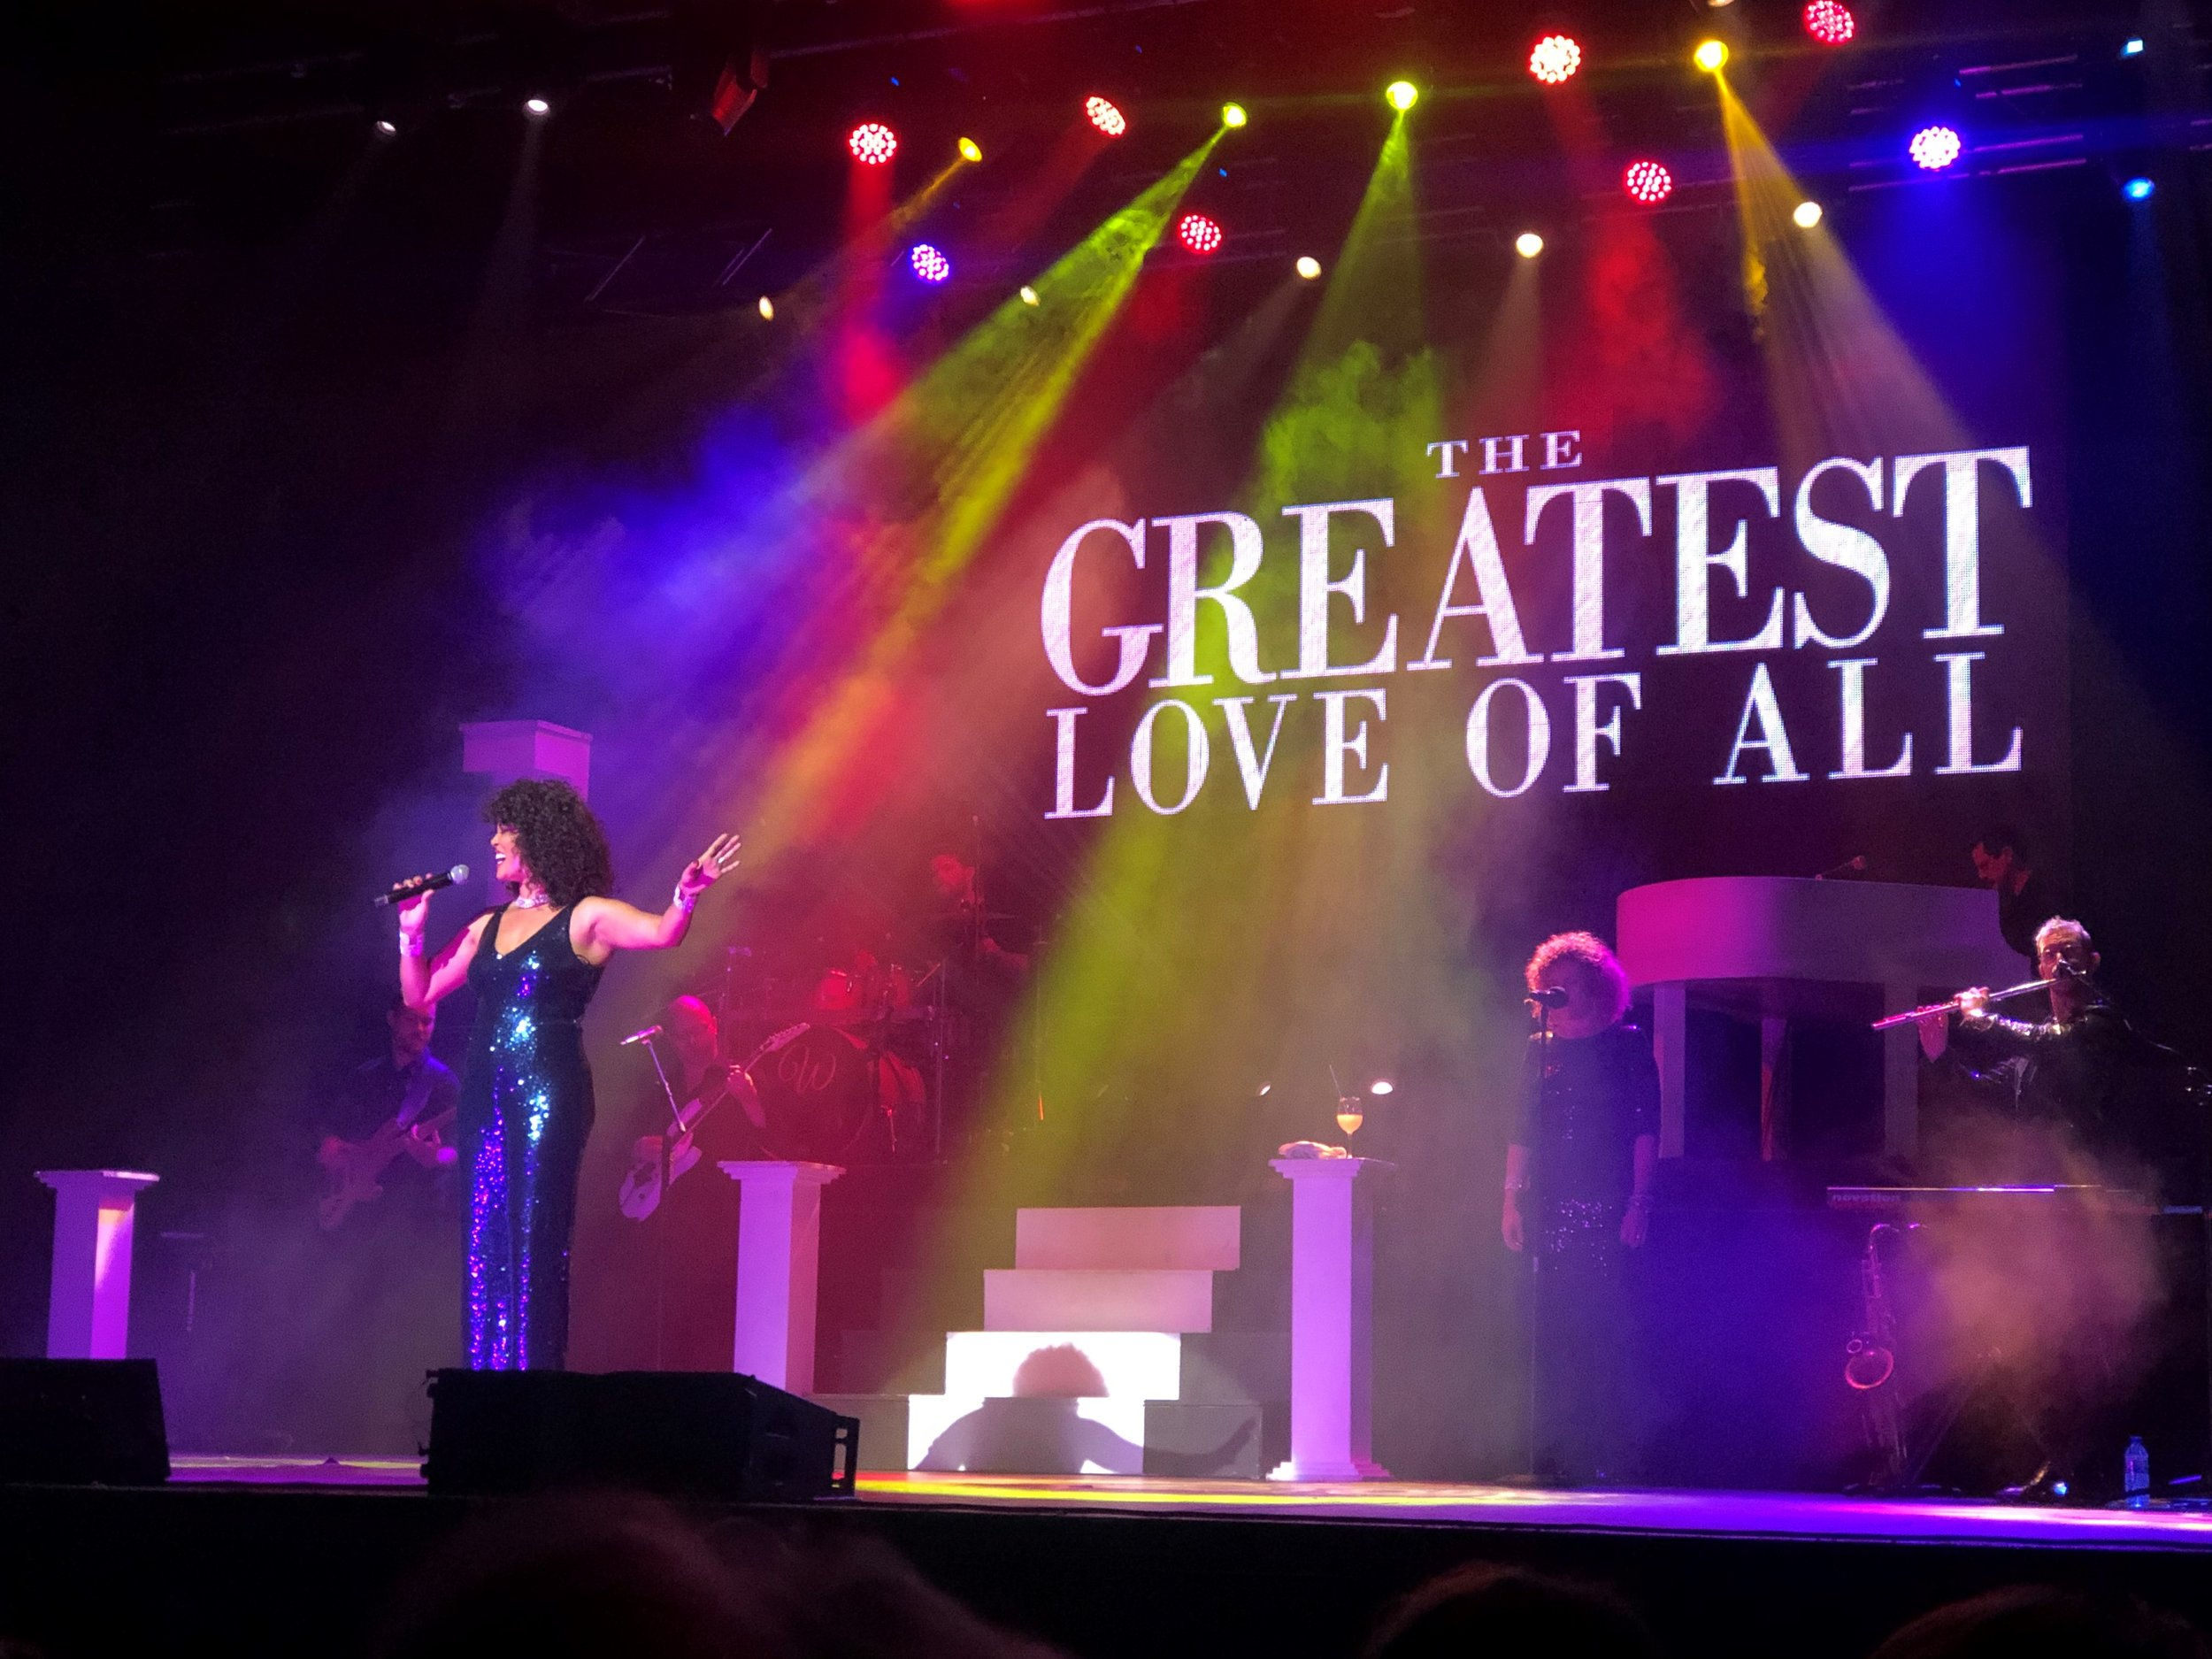 the greatest love of all, ipswich, regent, whitney